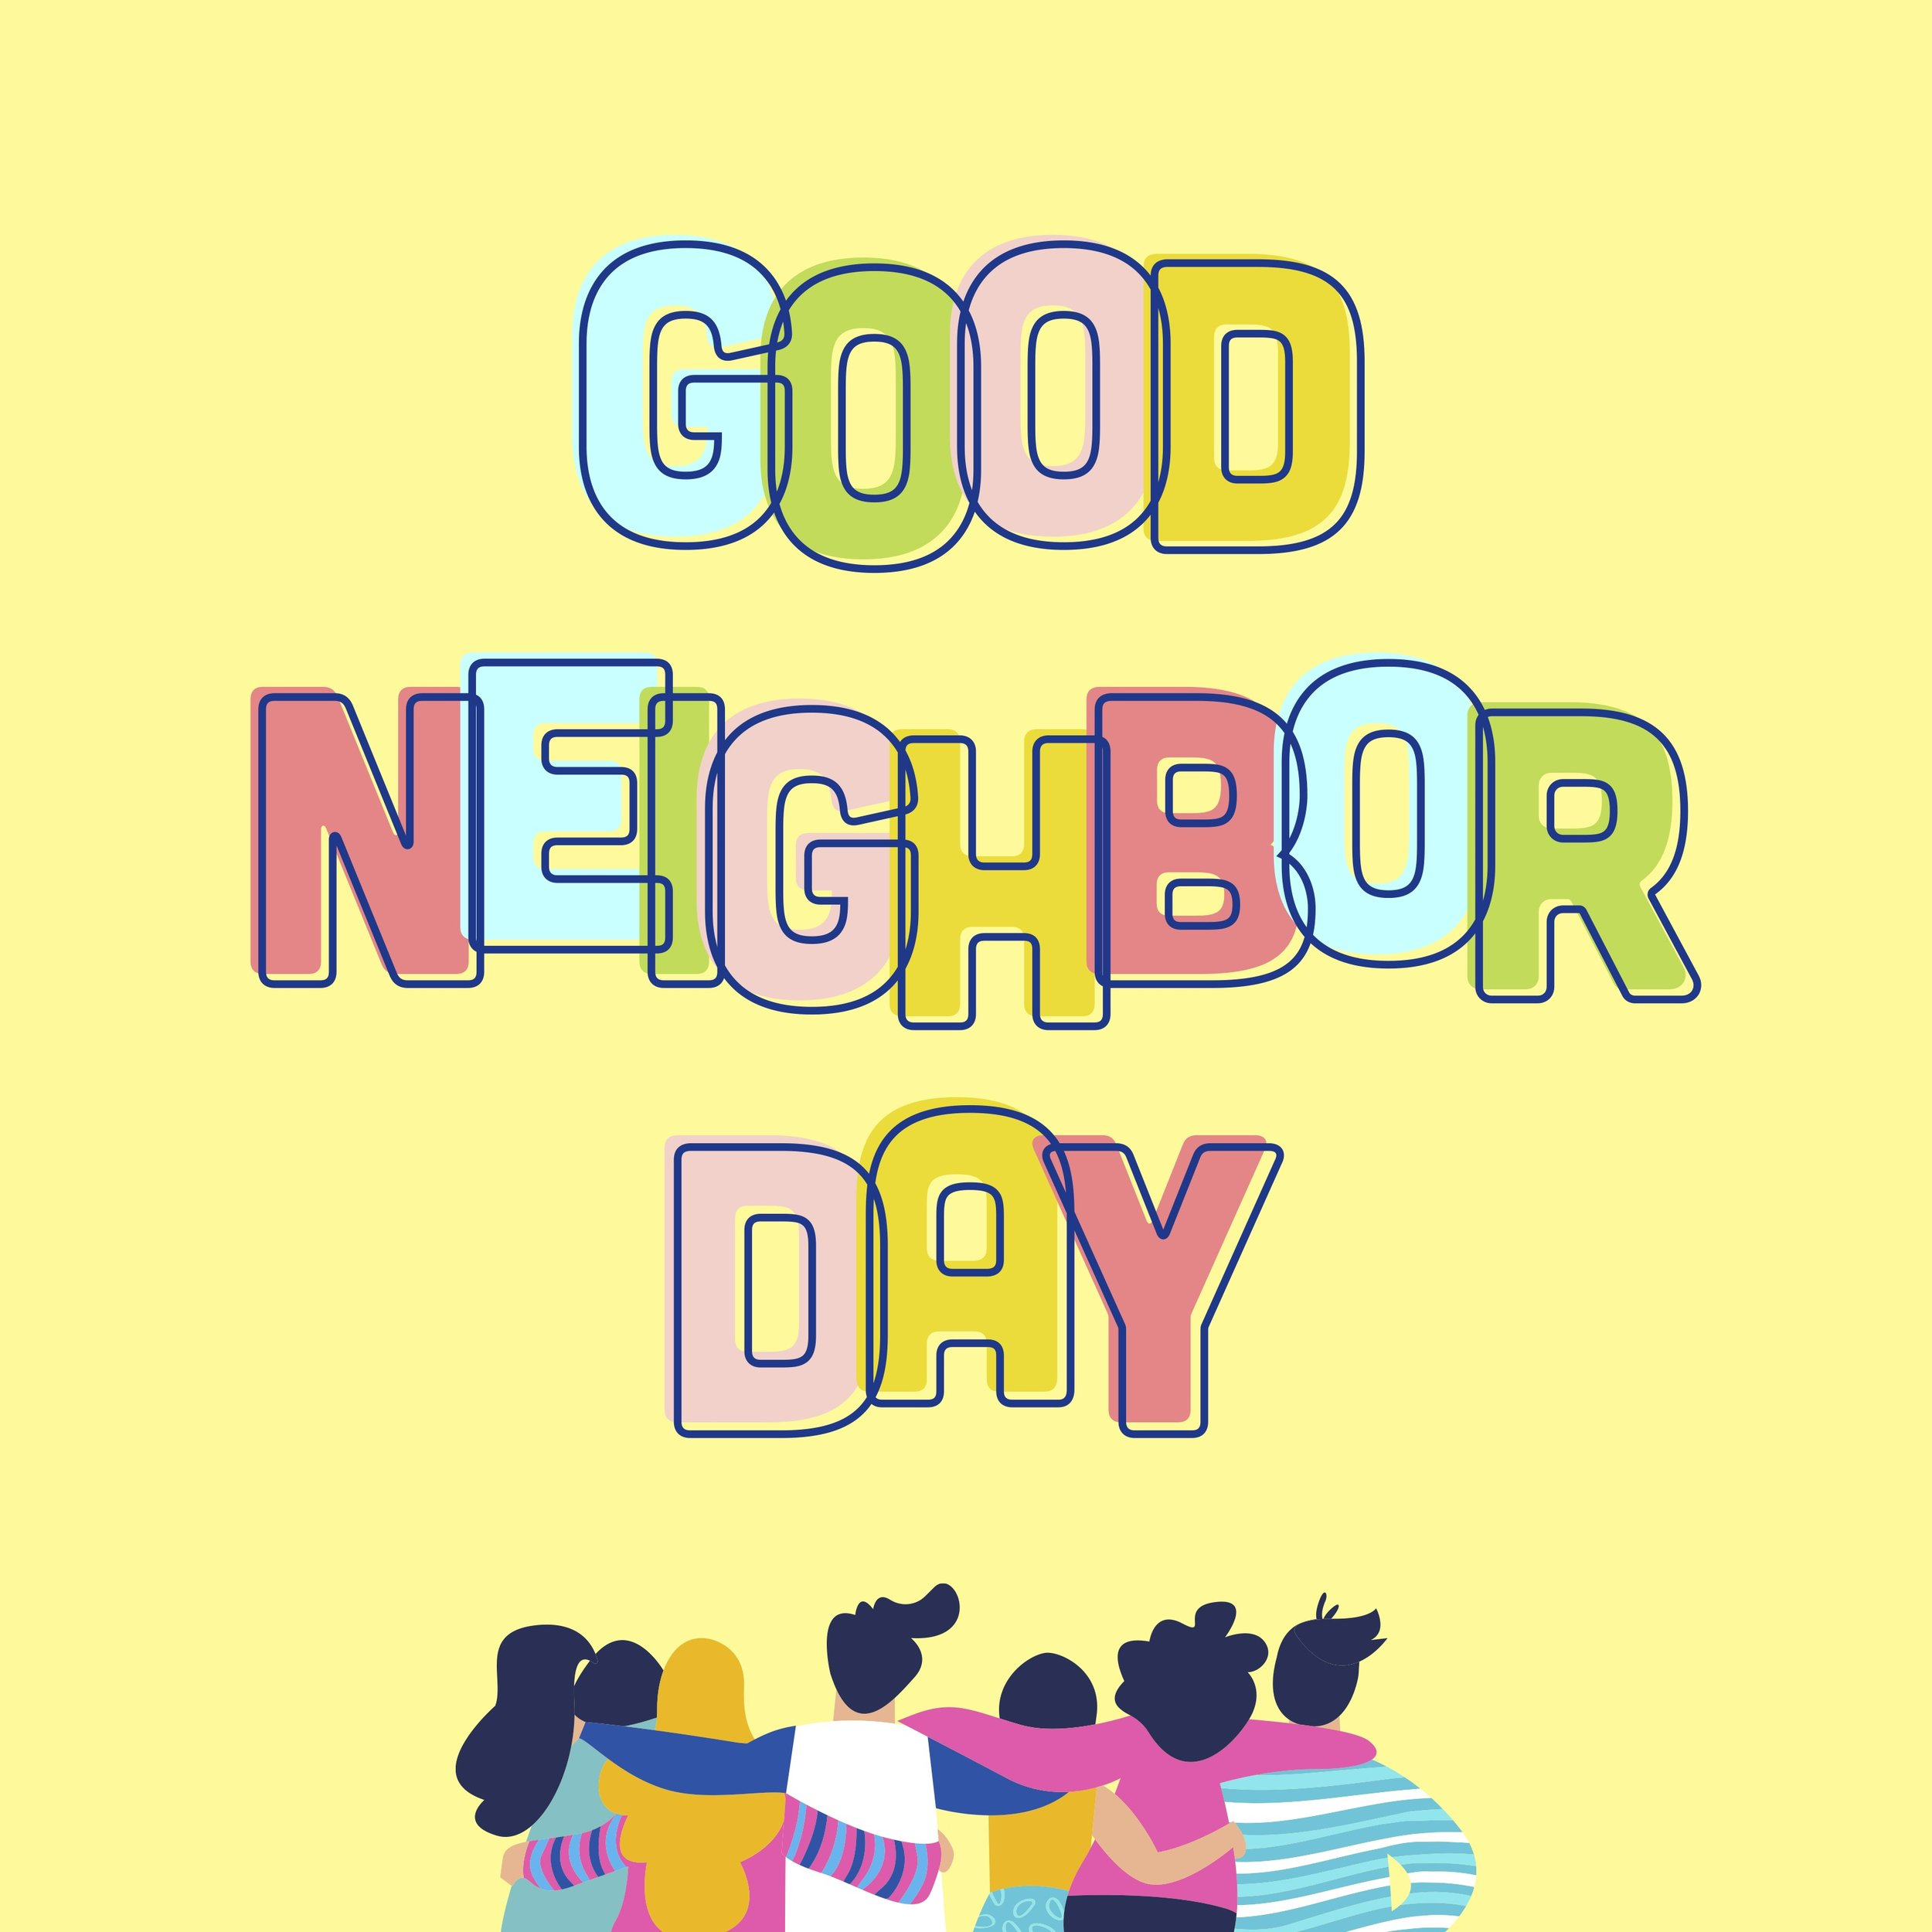 September 28th - #GoodNeighborDay   Search:  NEIGHBOR  _________ Apartments wants to wish you all a very happy #GoodNeighborDay. We are so proud to have so many wonderful residents at our community who are also great neighbors. If you know someone that would be the PERFECT neighbor, tell them about our community. And if they lease, we'll give you a _____ referral bonus.